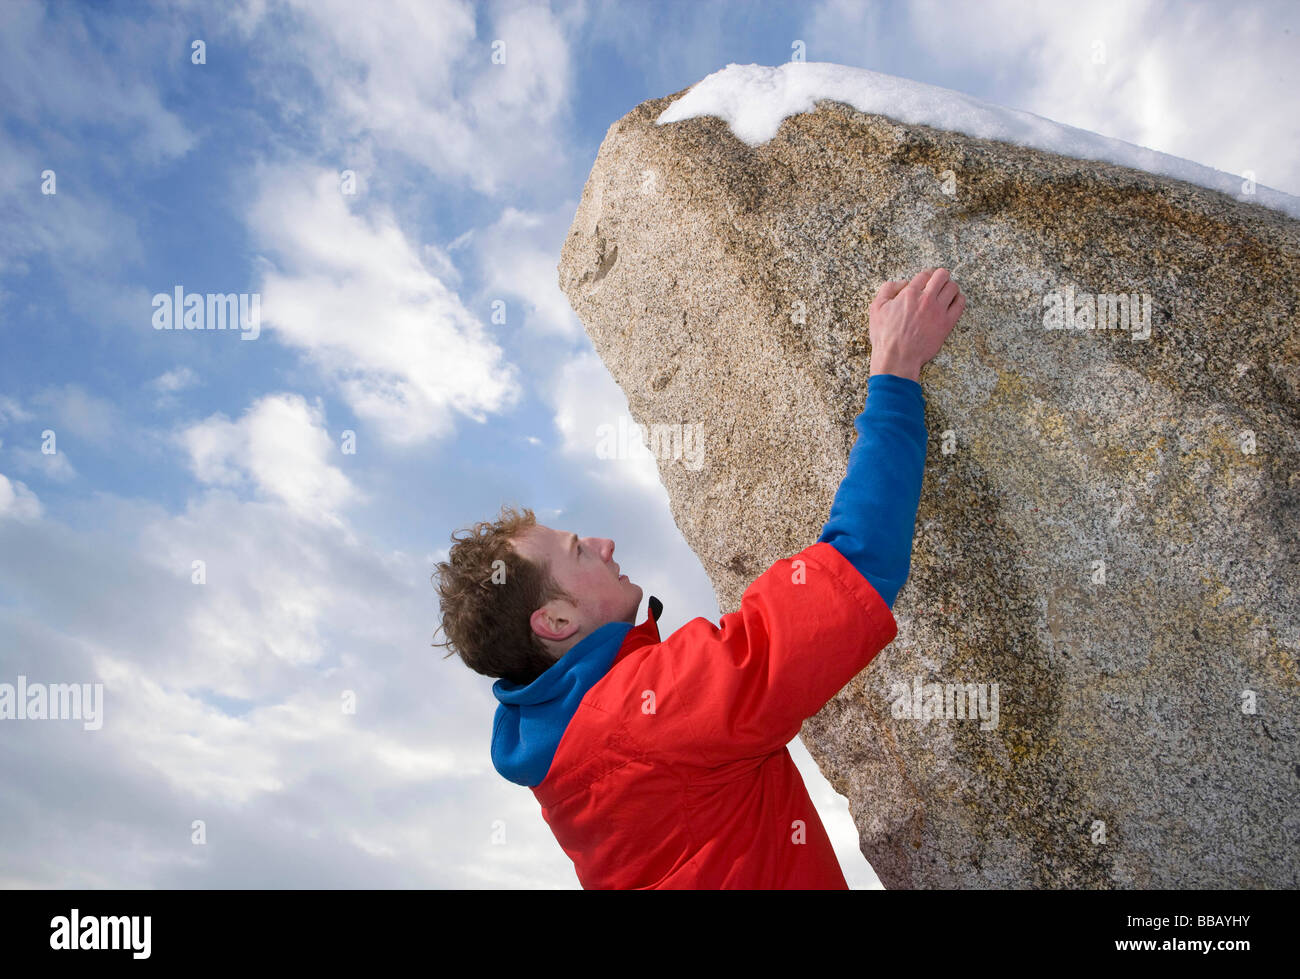 climber free climbing snow capped peak - Stock Image